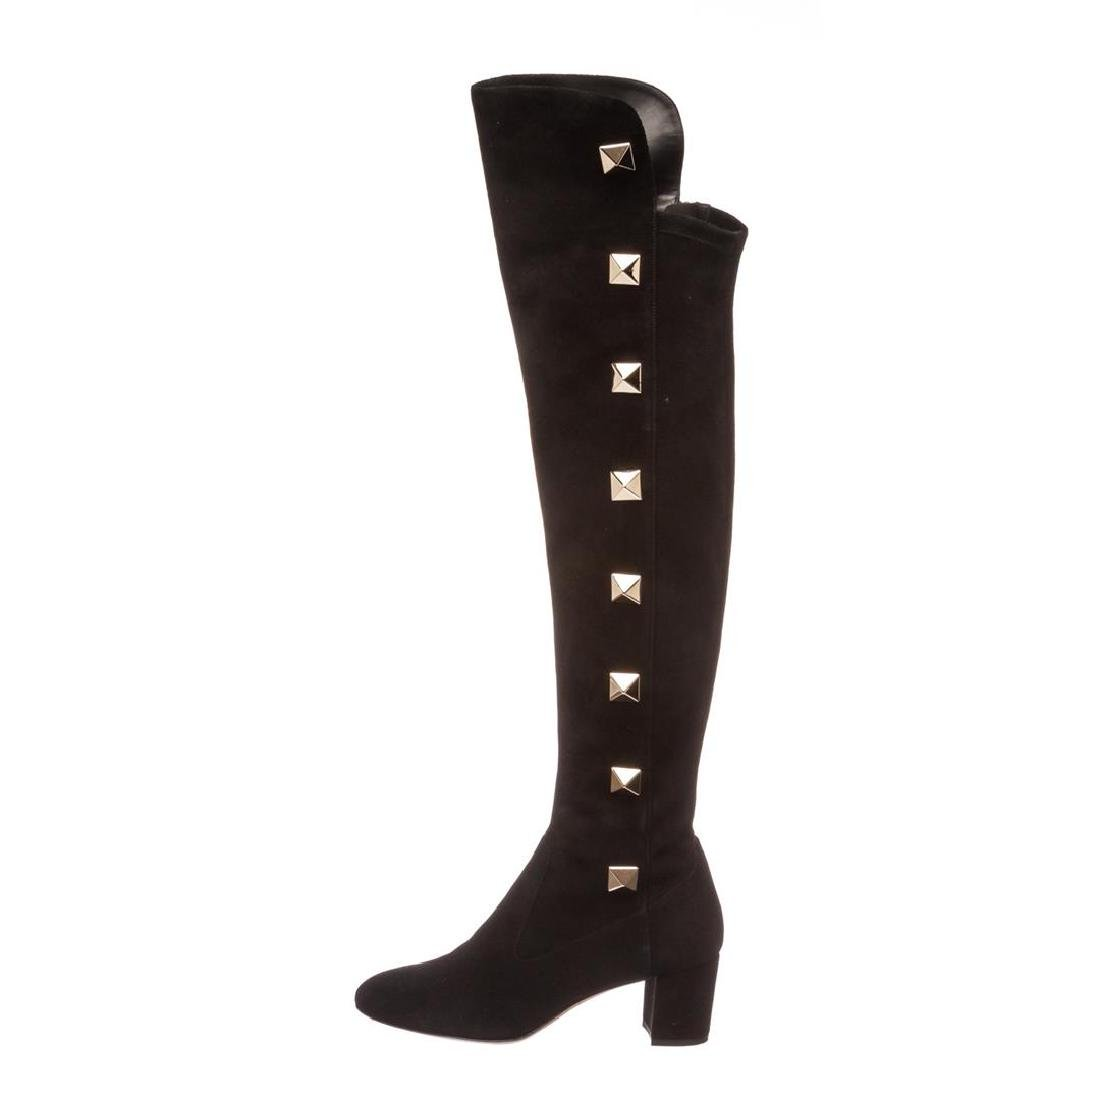 Valentino Black Suede Rockstud Over-The-Knee Boots - 5